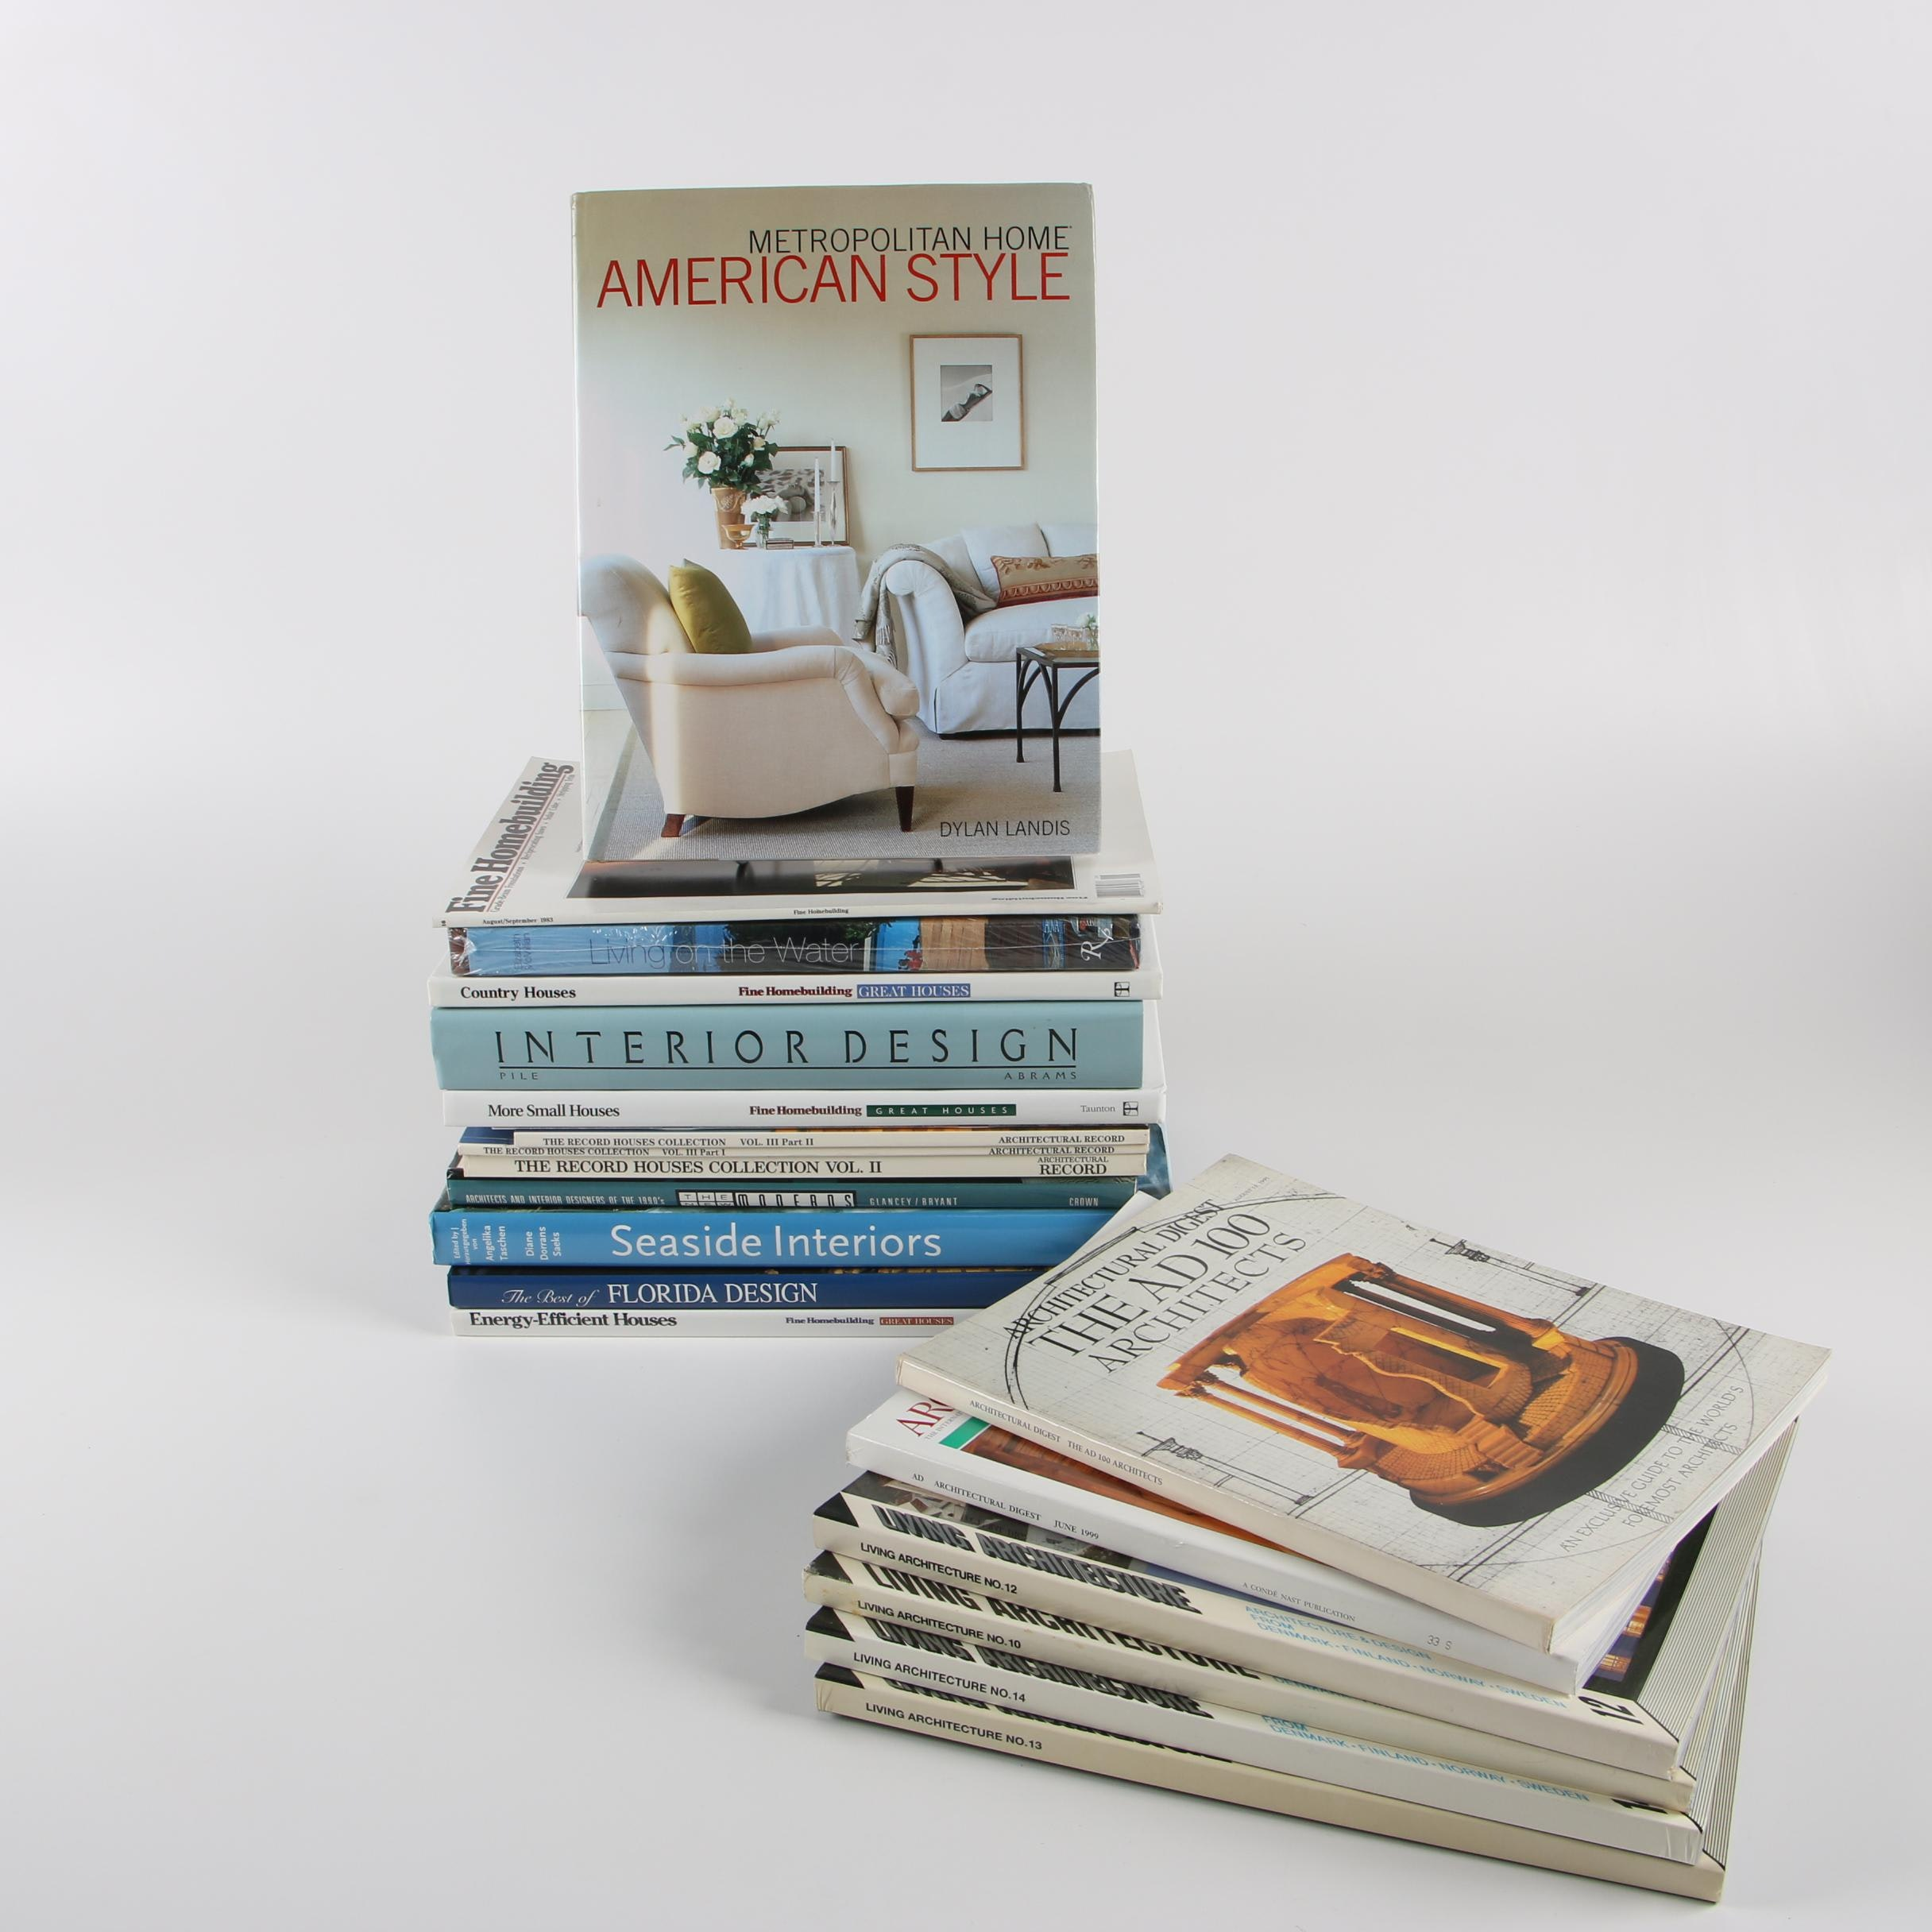 Architecture and Design Books with Magazines